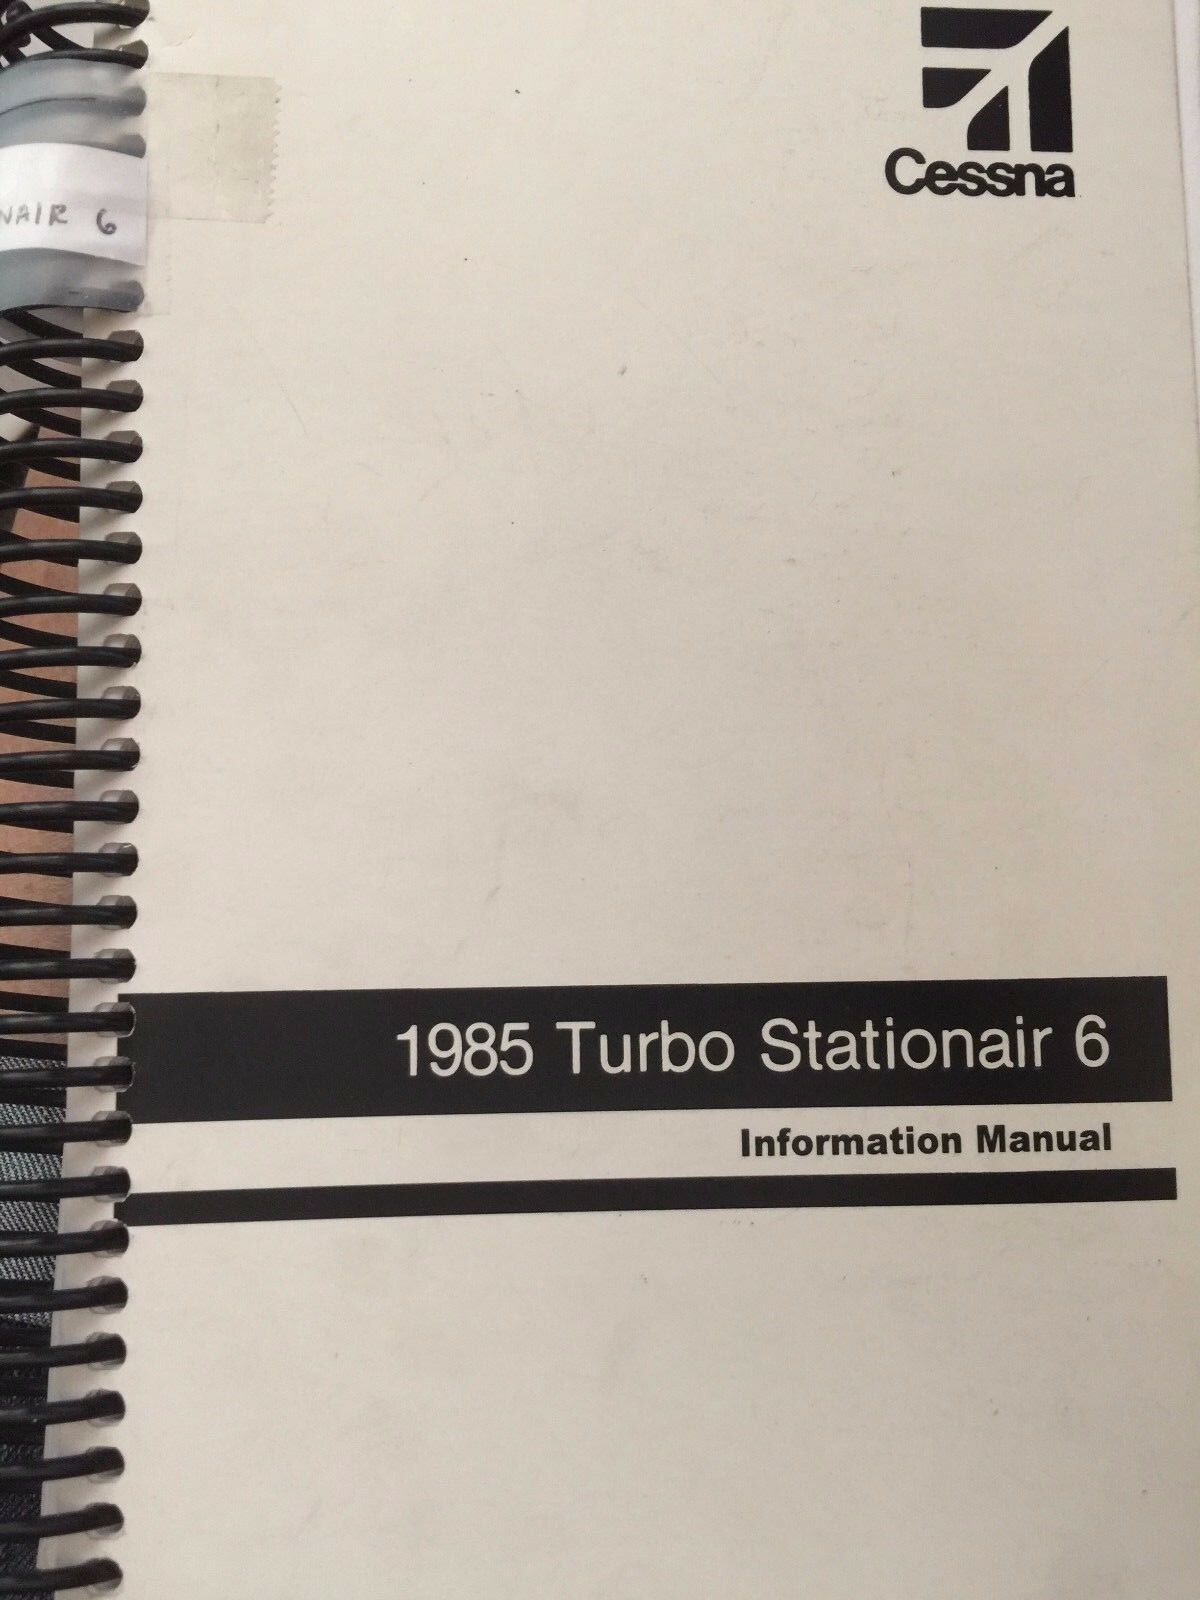 1985 CESSNA Turbo Stationair 6 INFORMATION MANUAL D1283-13 85TU206IM